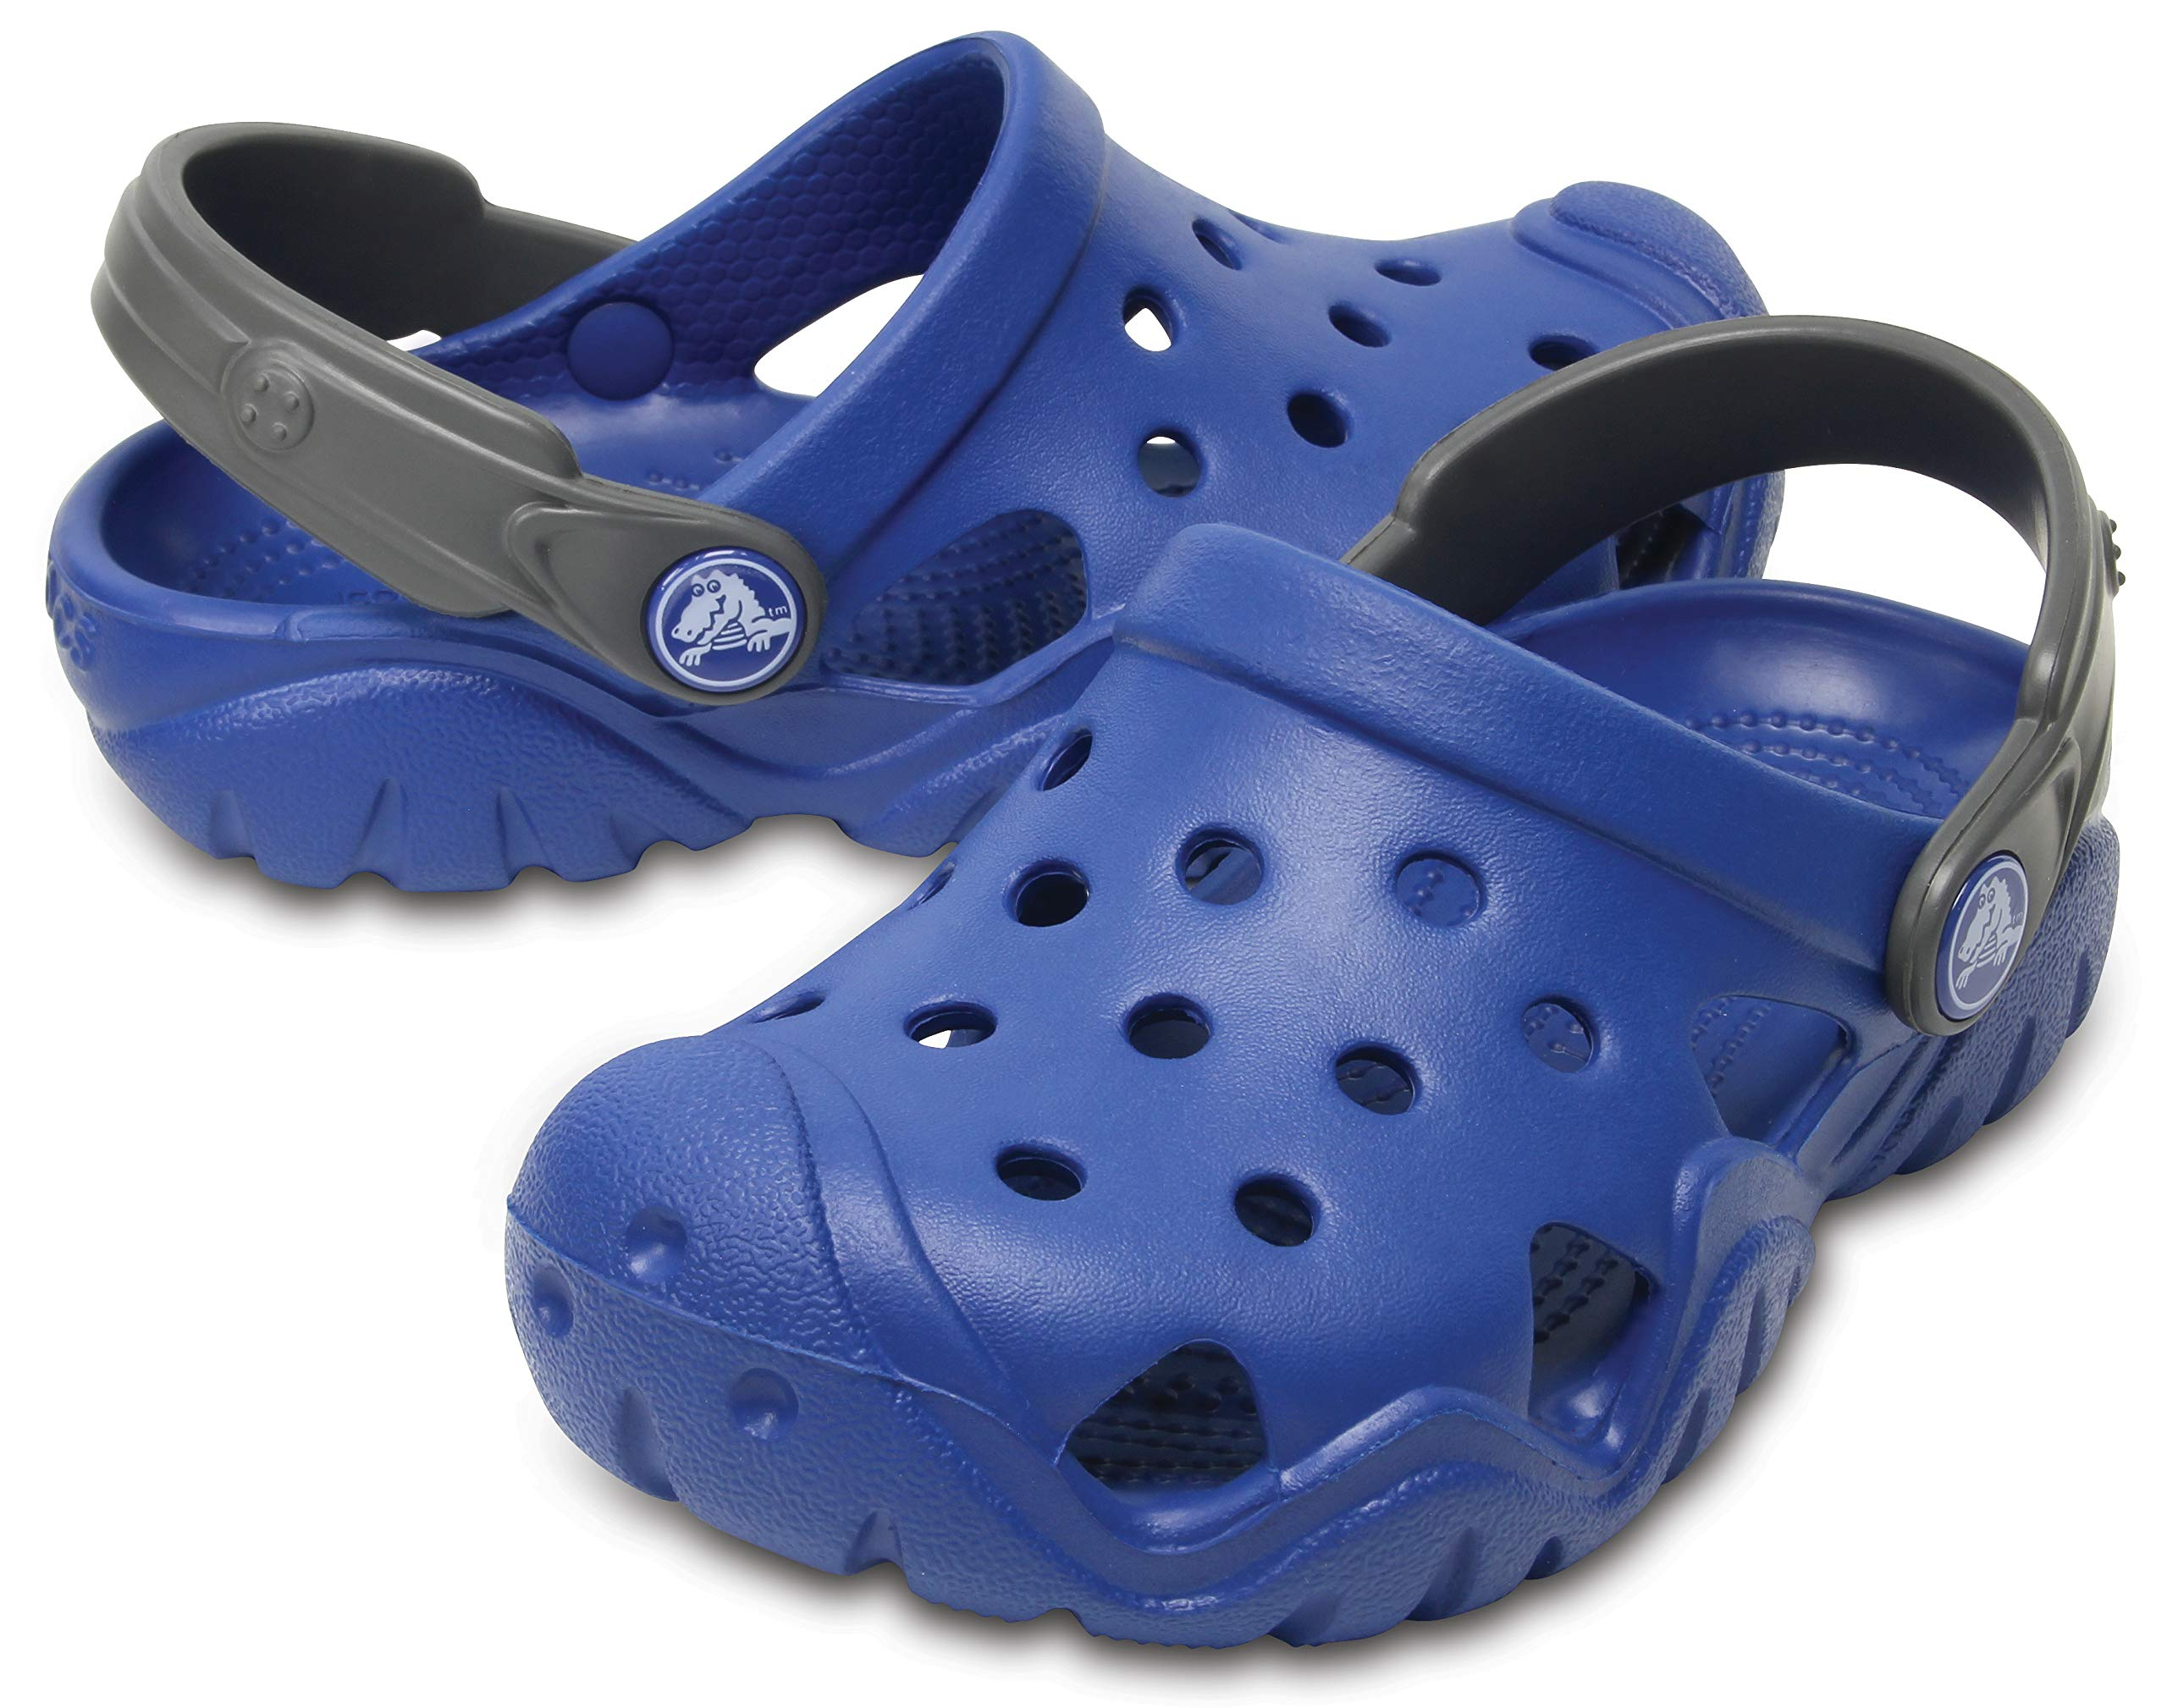 34a75c18a8bba6 See all customer reviews · crocs Unisex s Swiftwater K Clogs product image